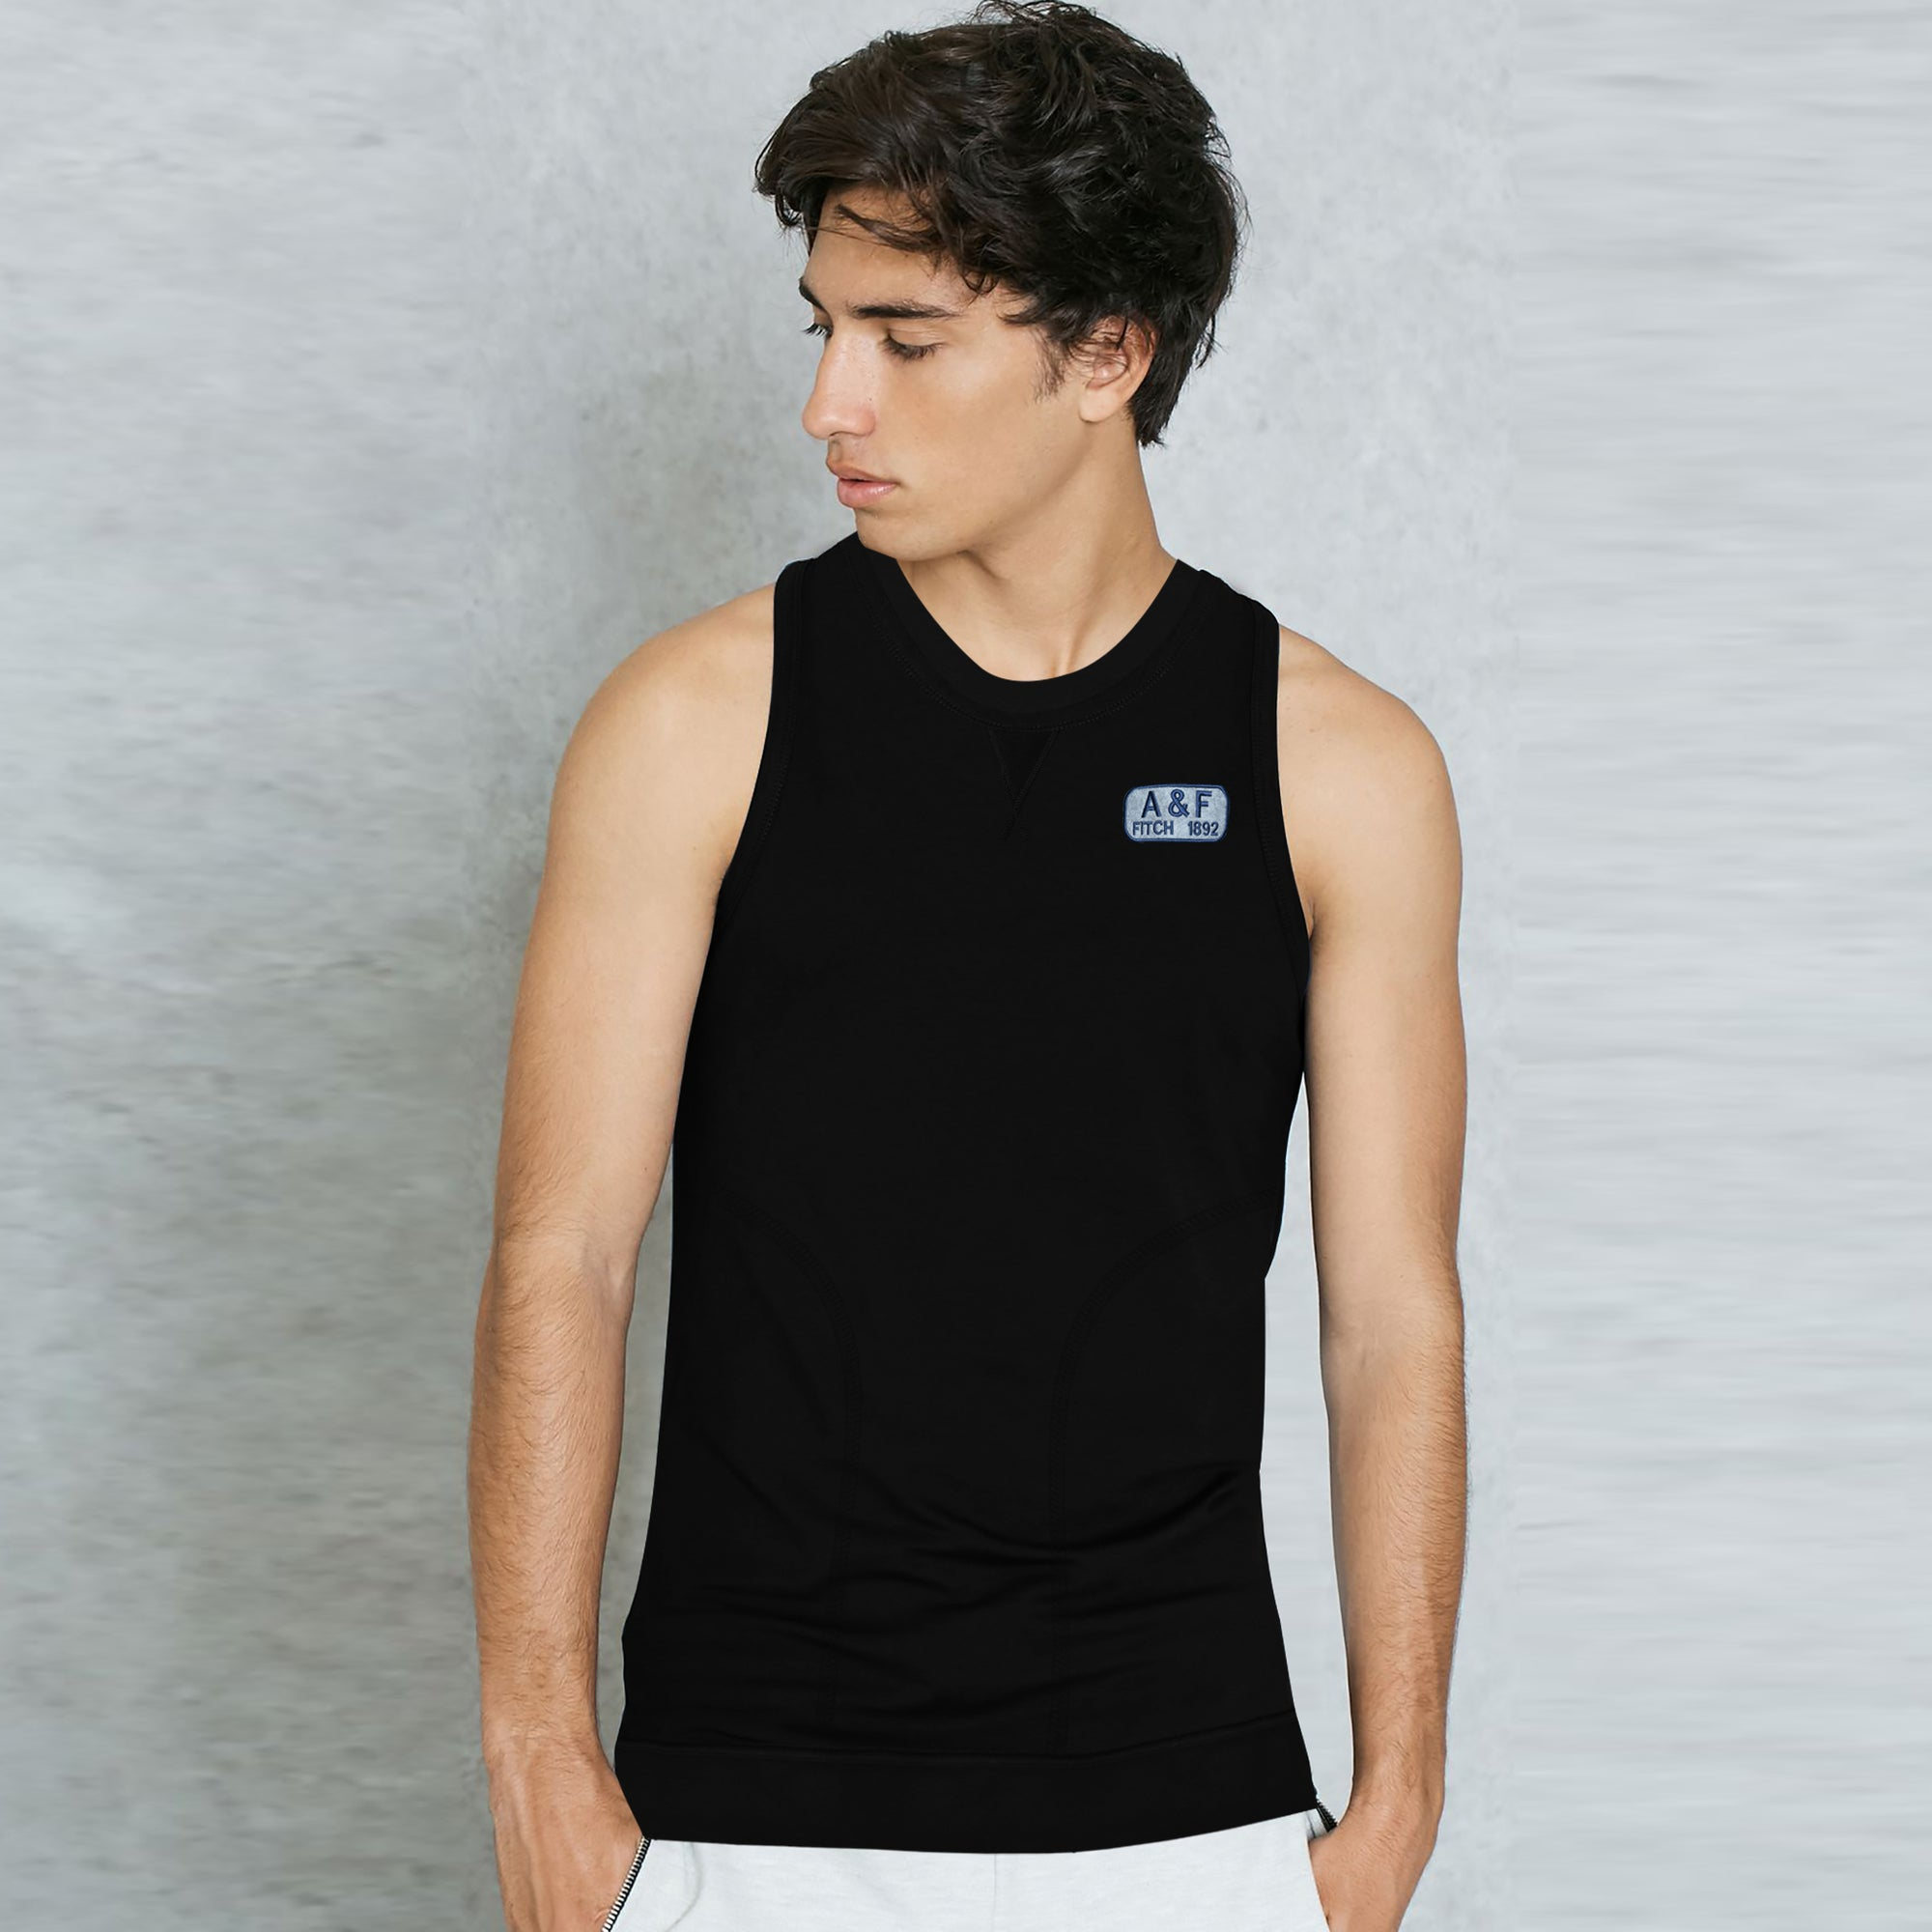 brandsego - A&F Terry Fleece Sleeveless Shirt For Men-Black-BE6525